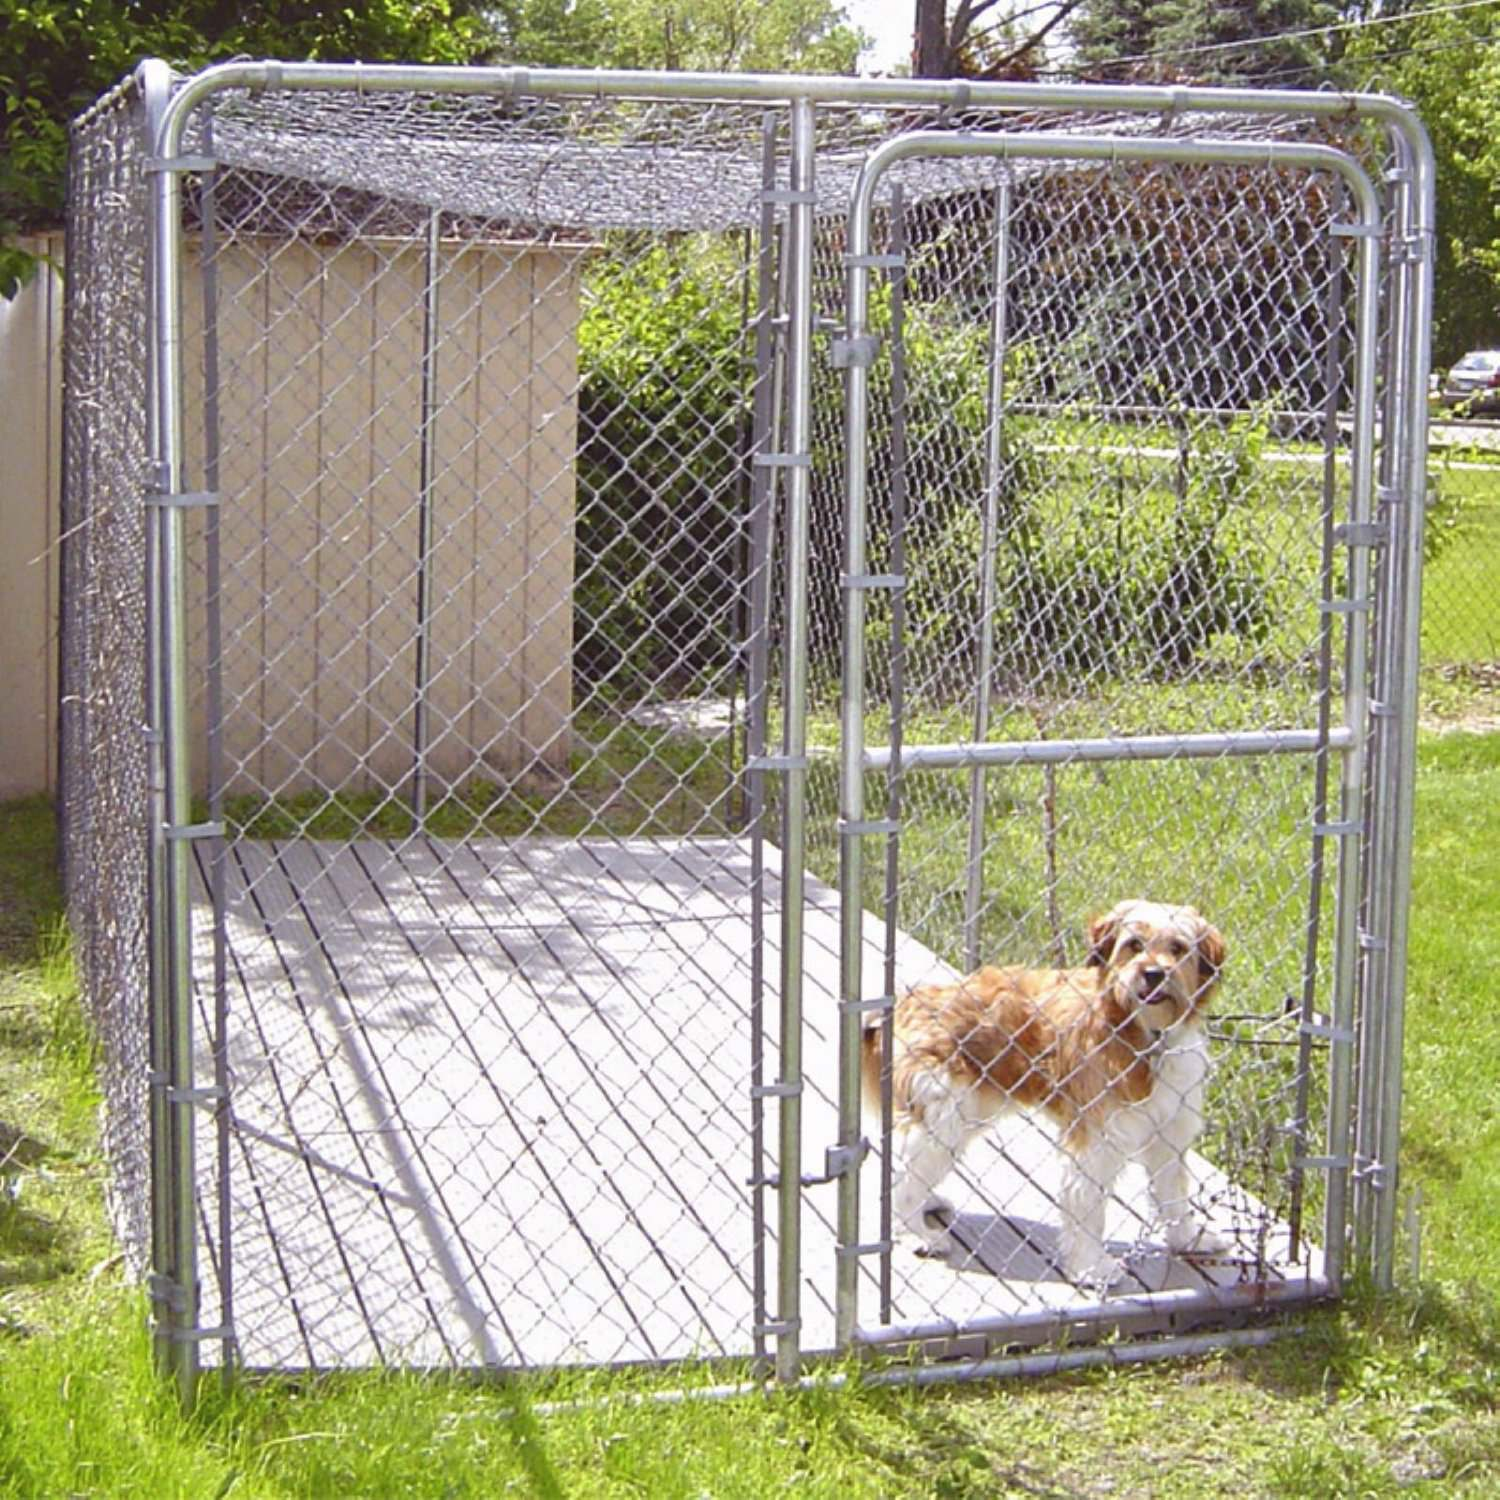 five great types of kennel flooring for dogs | animal hub